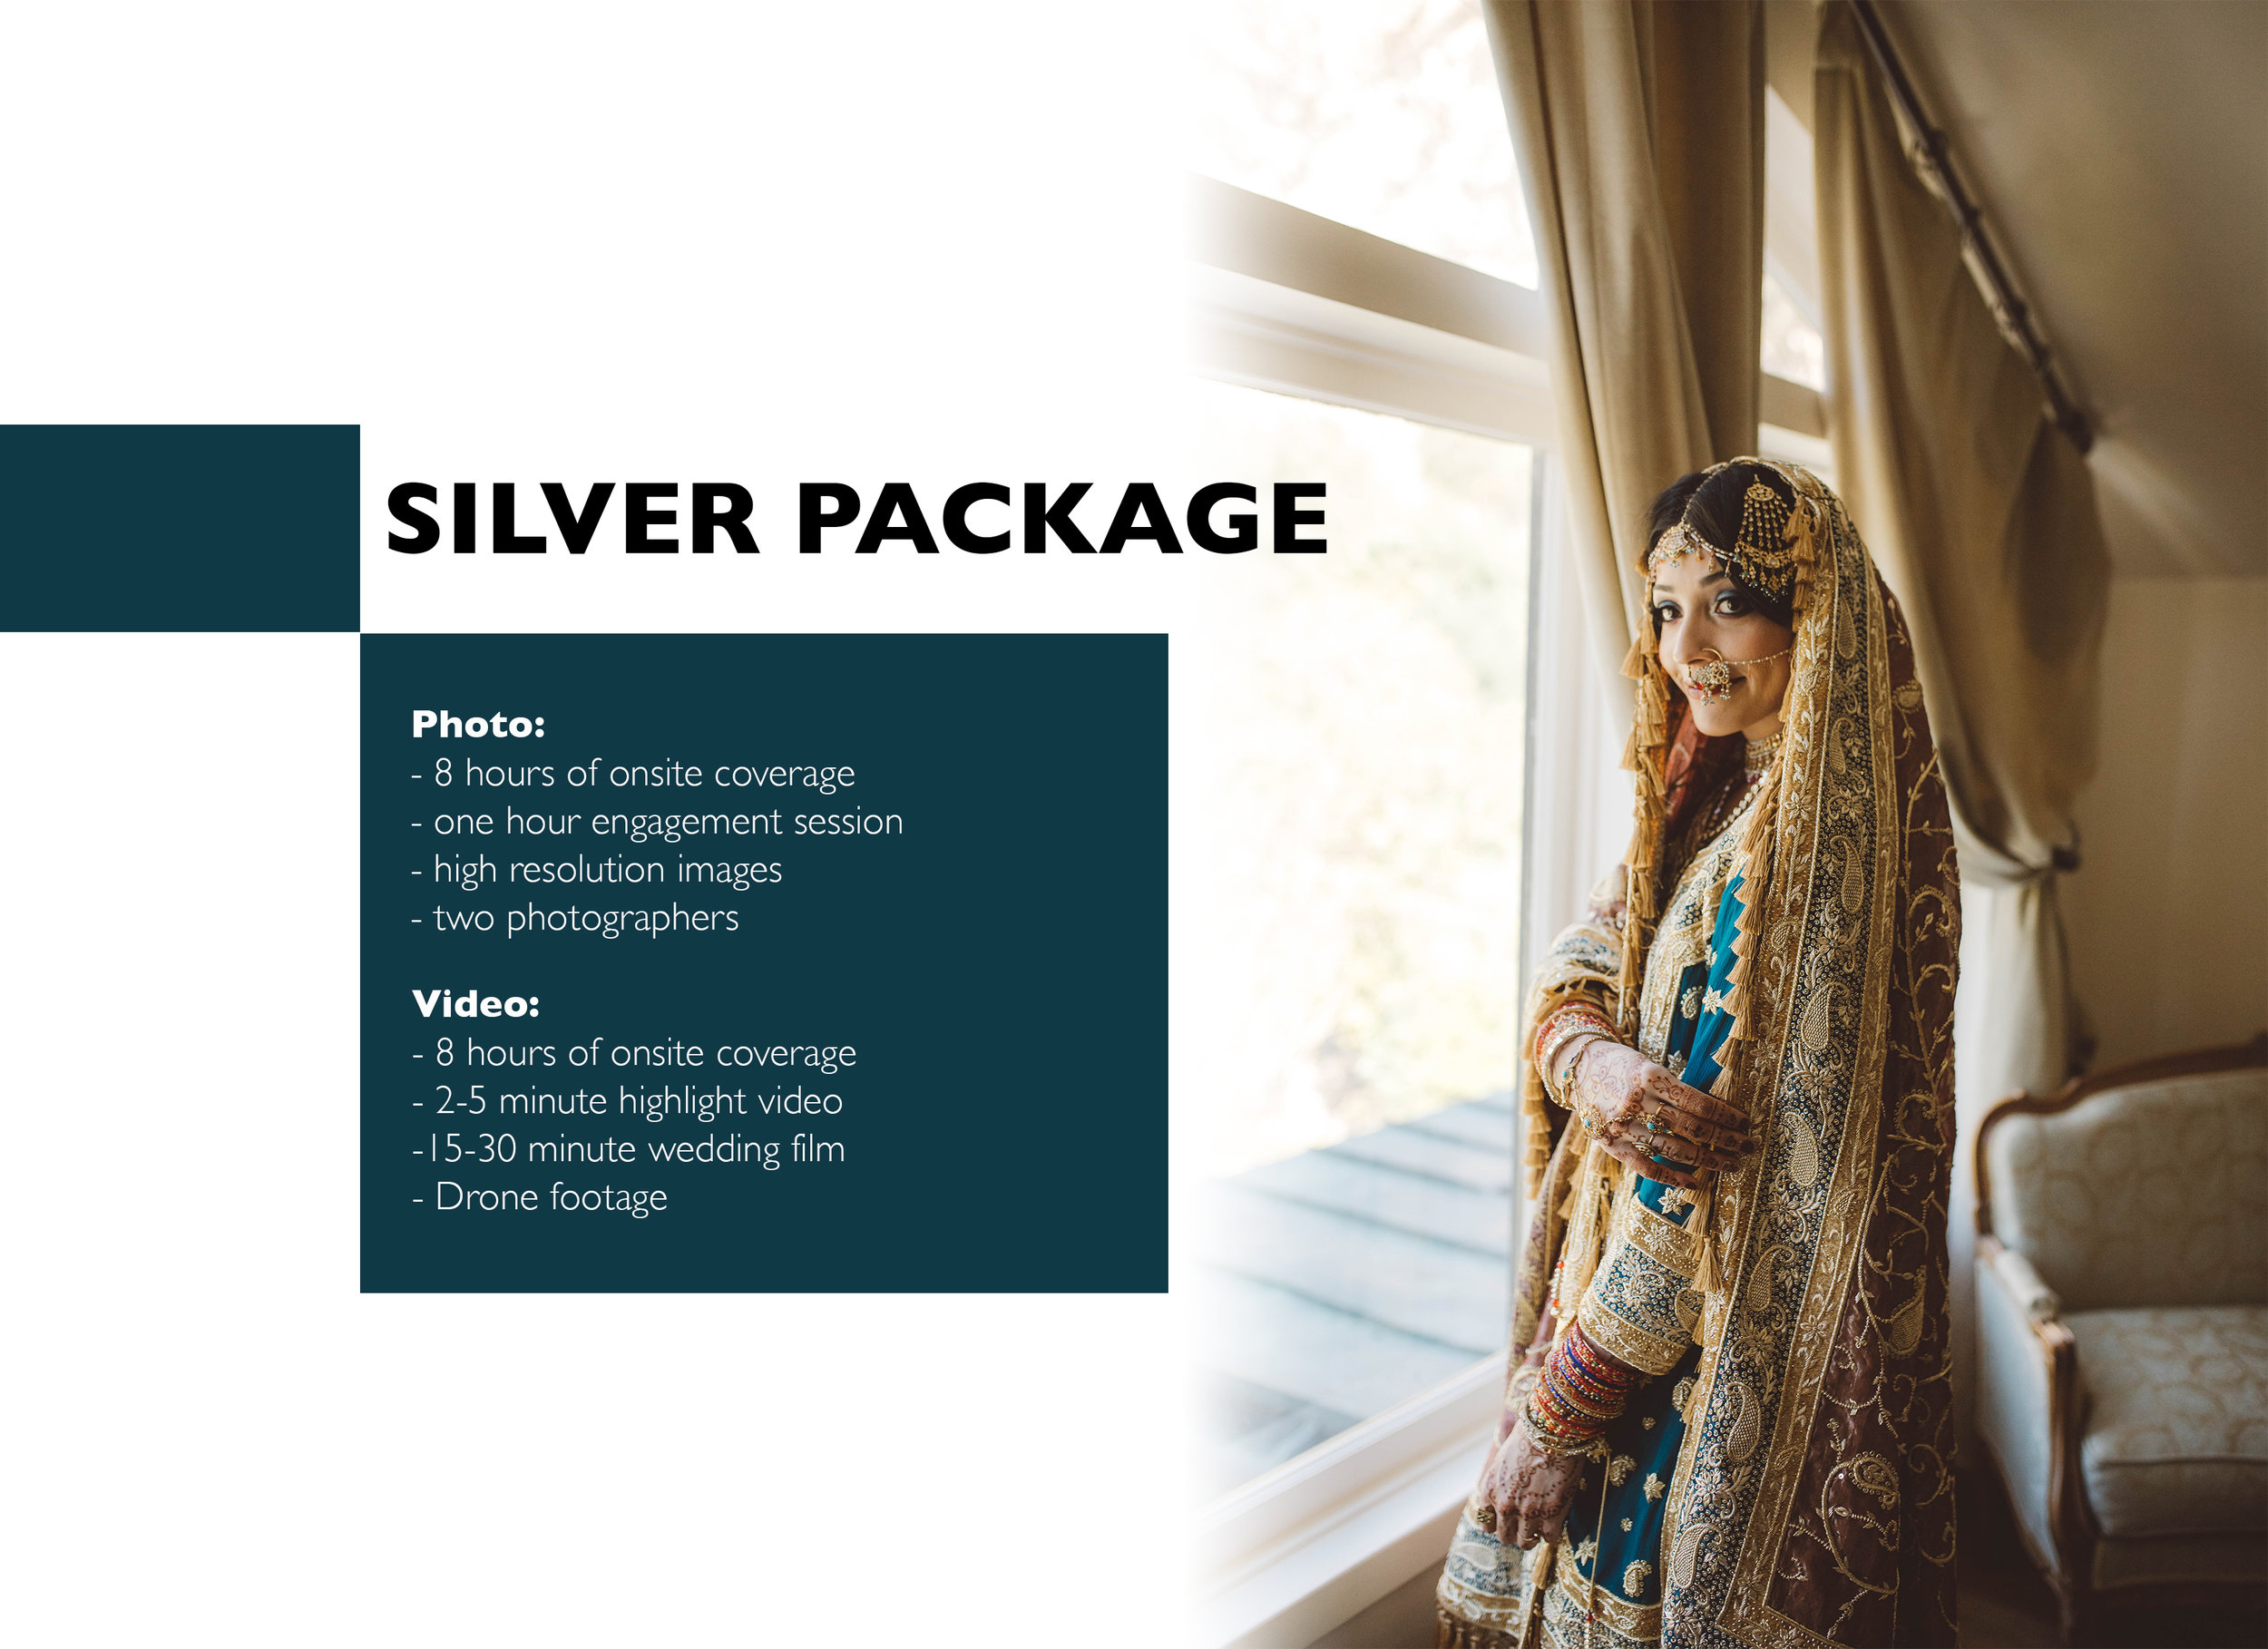 photo and video wedding packages silver.jpg